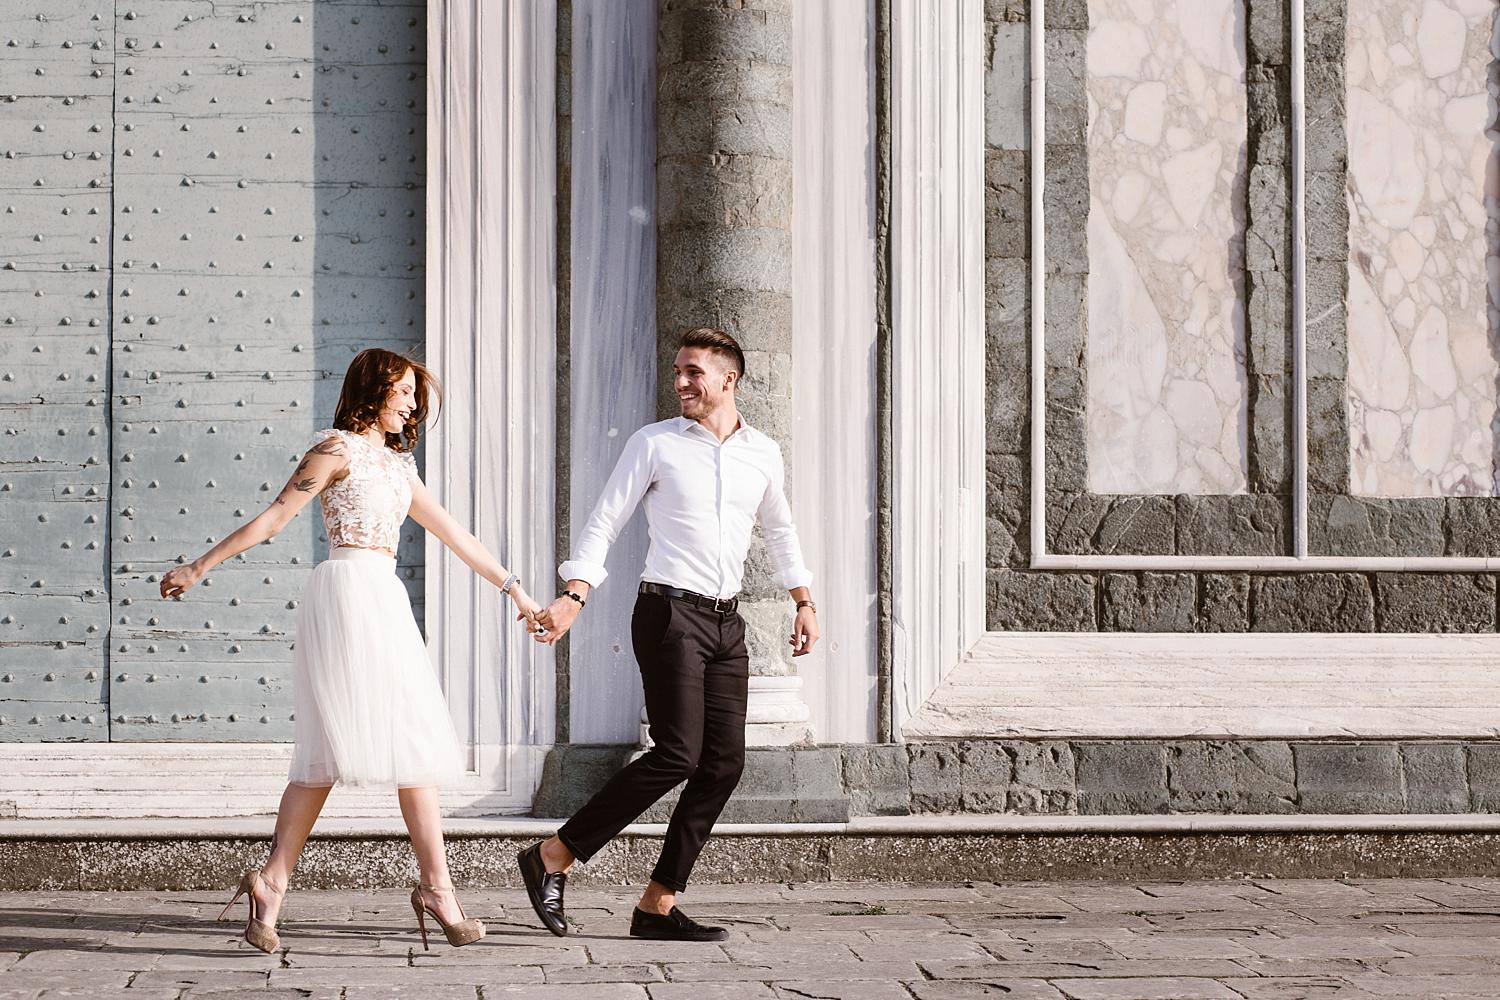 weddingphotographer florence 29 - Maddalena & Arturo - A Chic Anniversary Session in Florence